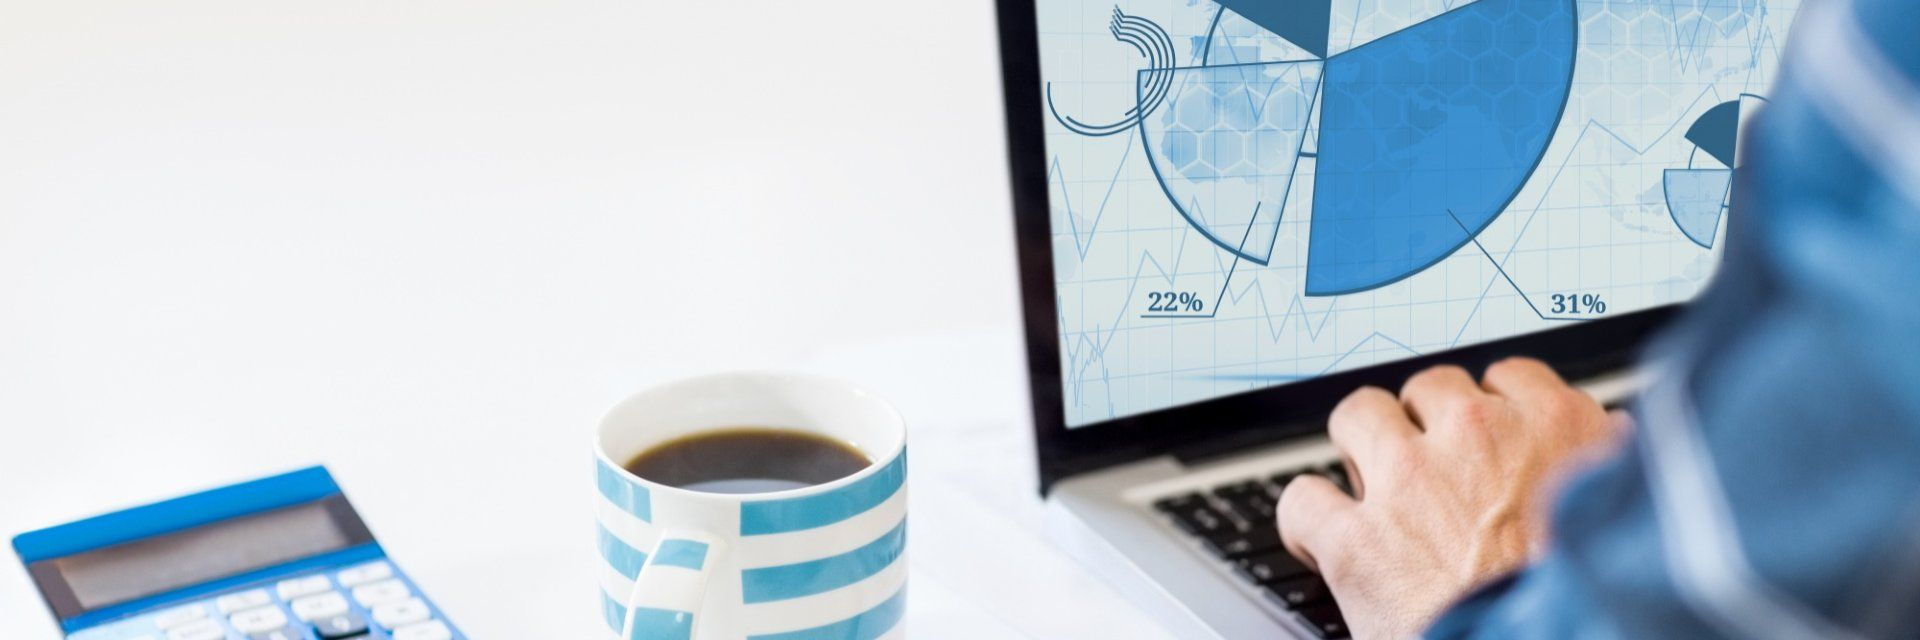 Data Science Specialization Courses Certifications